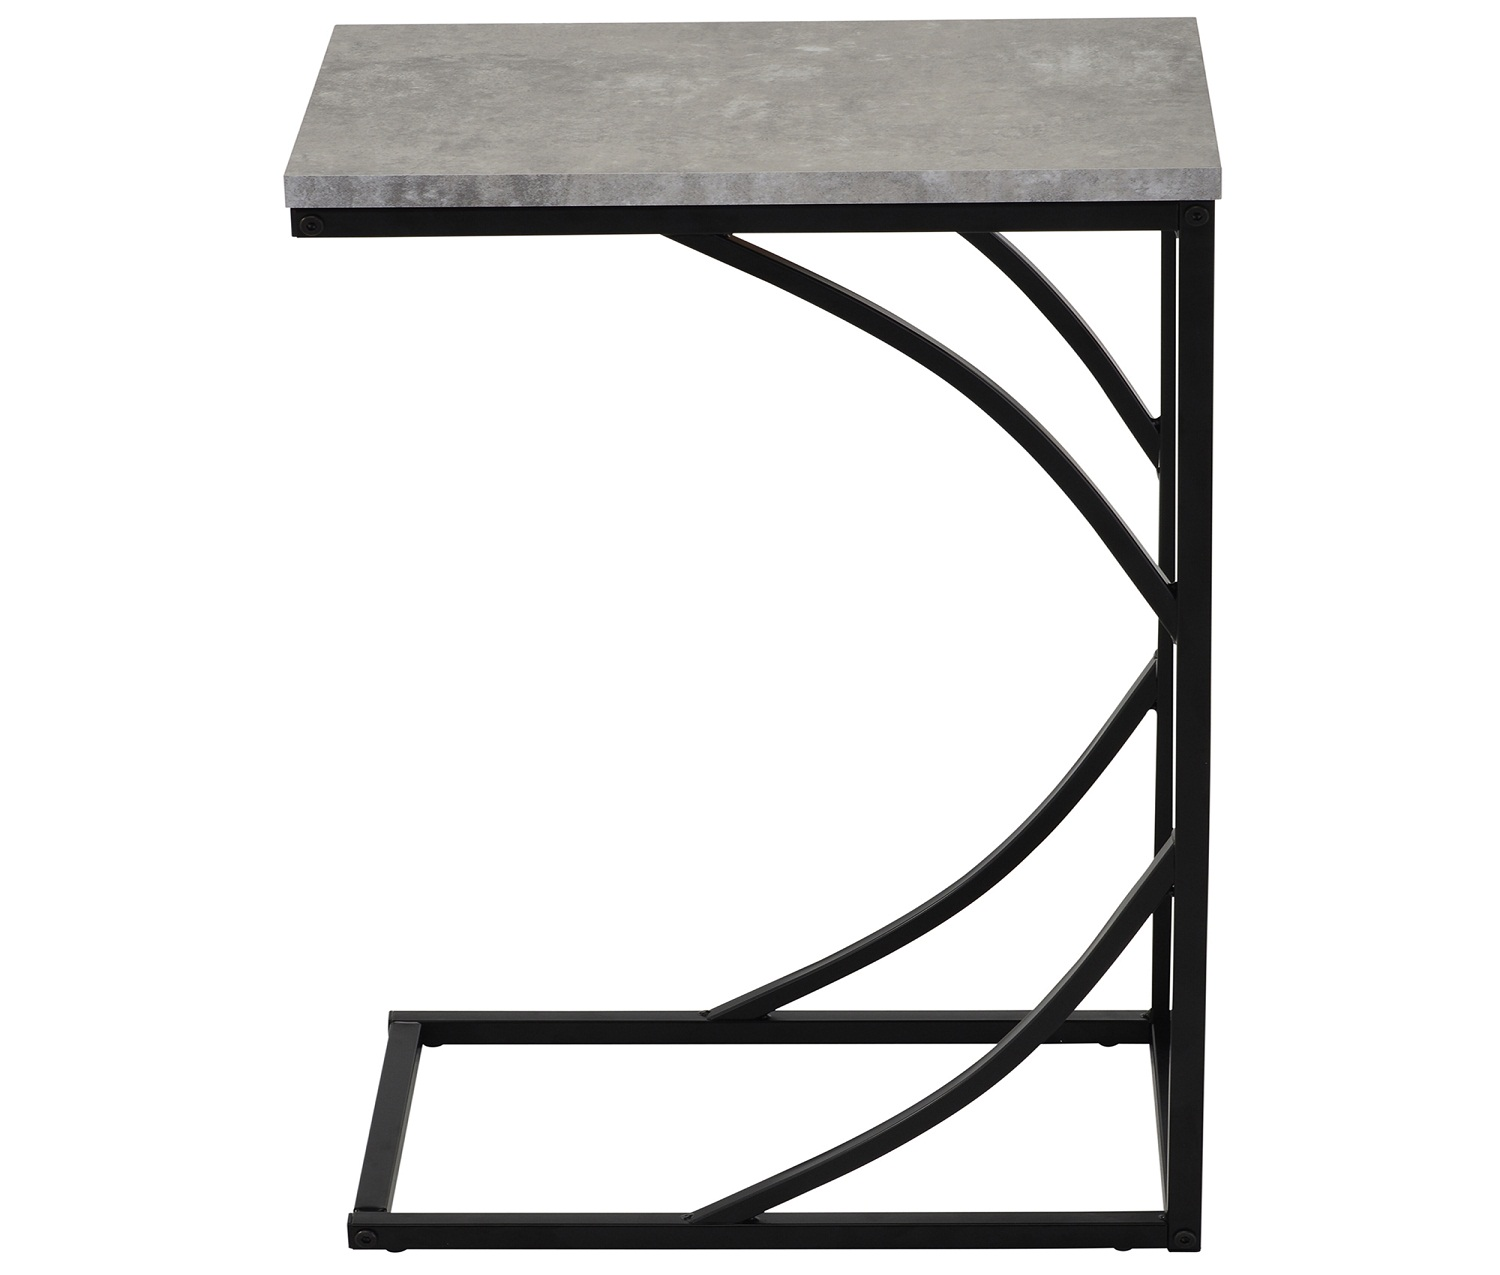 DARCY-ACCENT TABLE-CEMENT, 841173033606, Accent/End Tables, DARCY-ACCENT TABLE-CEMENT from Dropship by Midha Furniture serving Brampton, Mississauga, Etobicoke, Toronto, Scraborough, Caledon, Cambridge, Oakville, Markham, Ajax, Pickering, Oshawa, Richmondhill, Kitchener, Hamilton, Cambridge, Waterloo and GTA area